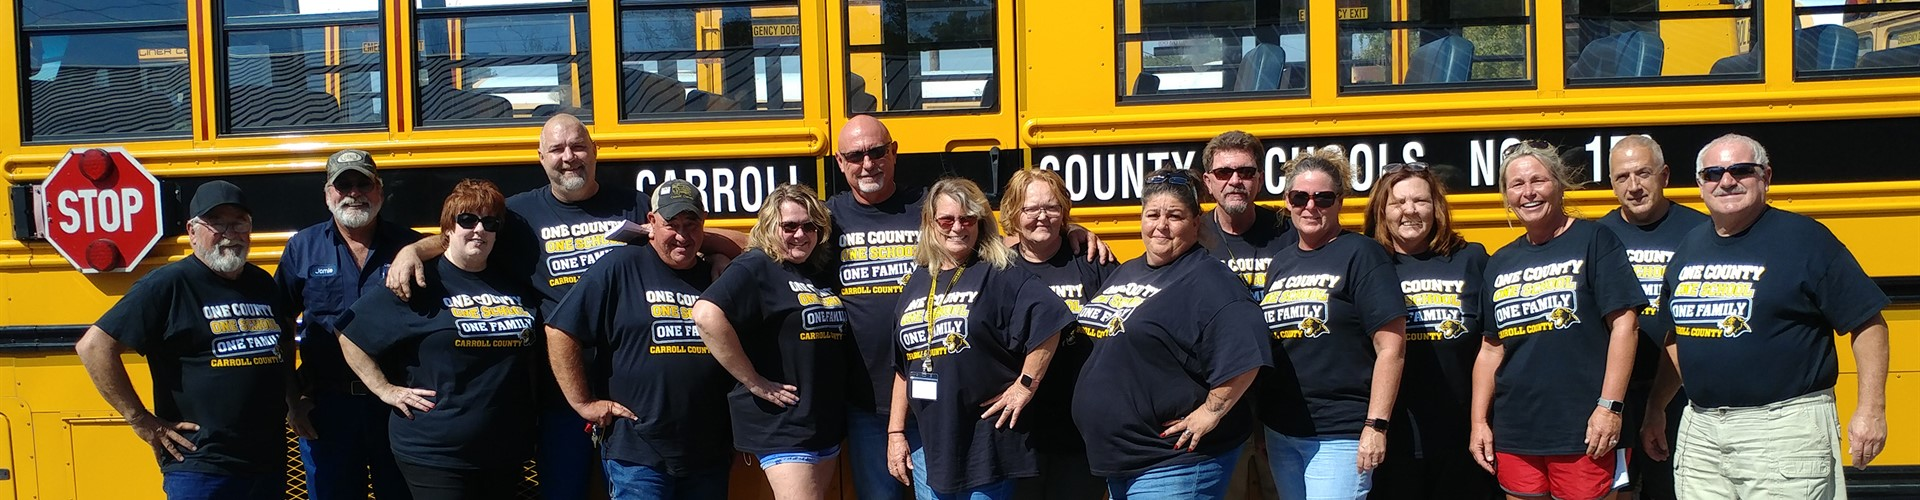 Sixteen bus drivers wear black shirts and stand together beside school bus.